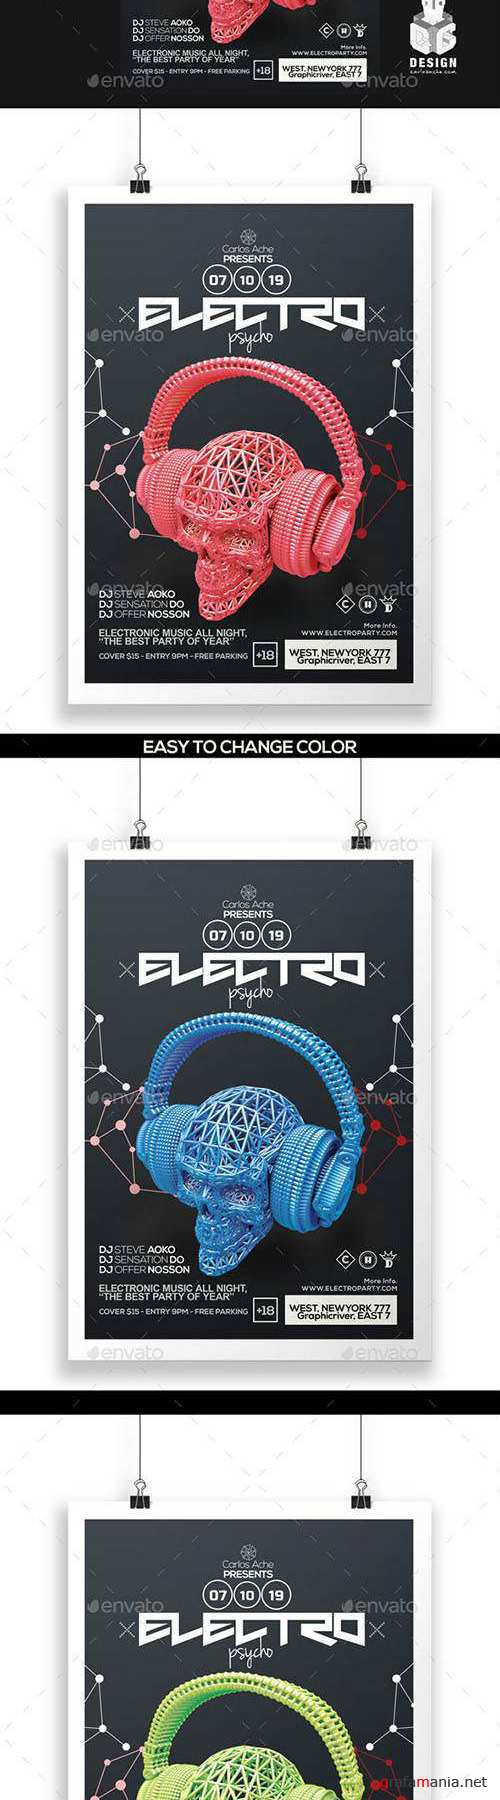 Electro Psycho Poster - Flyer Template 12145305 (Graphicriver)